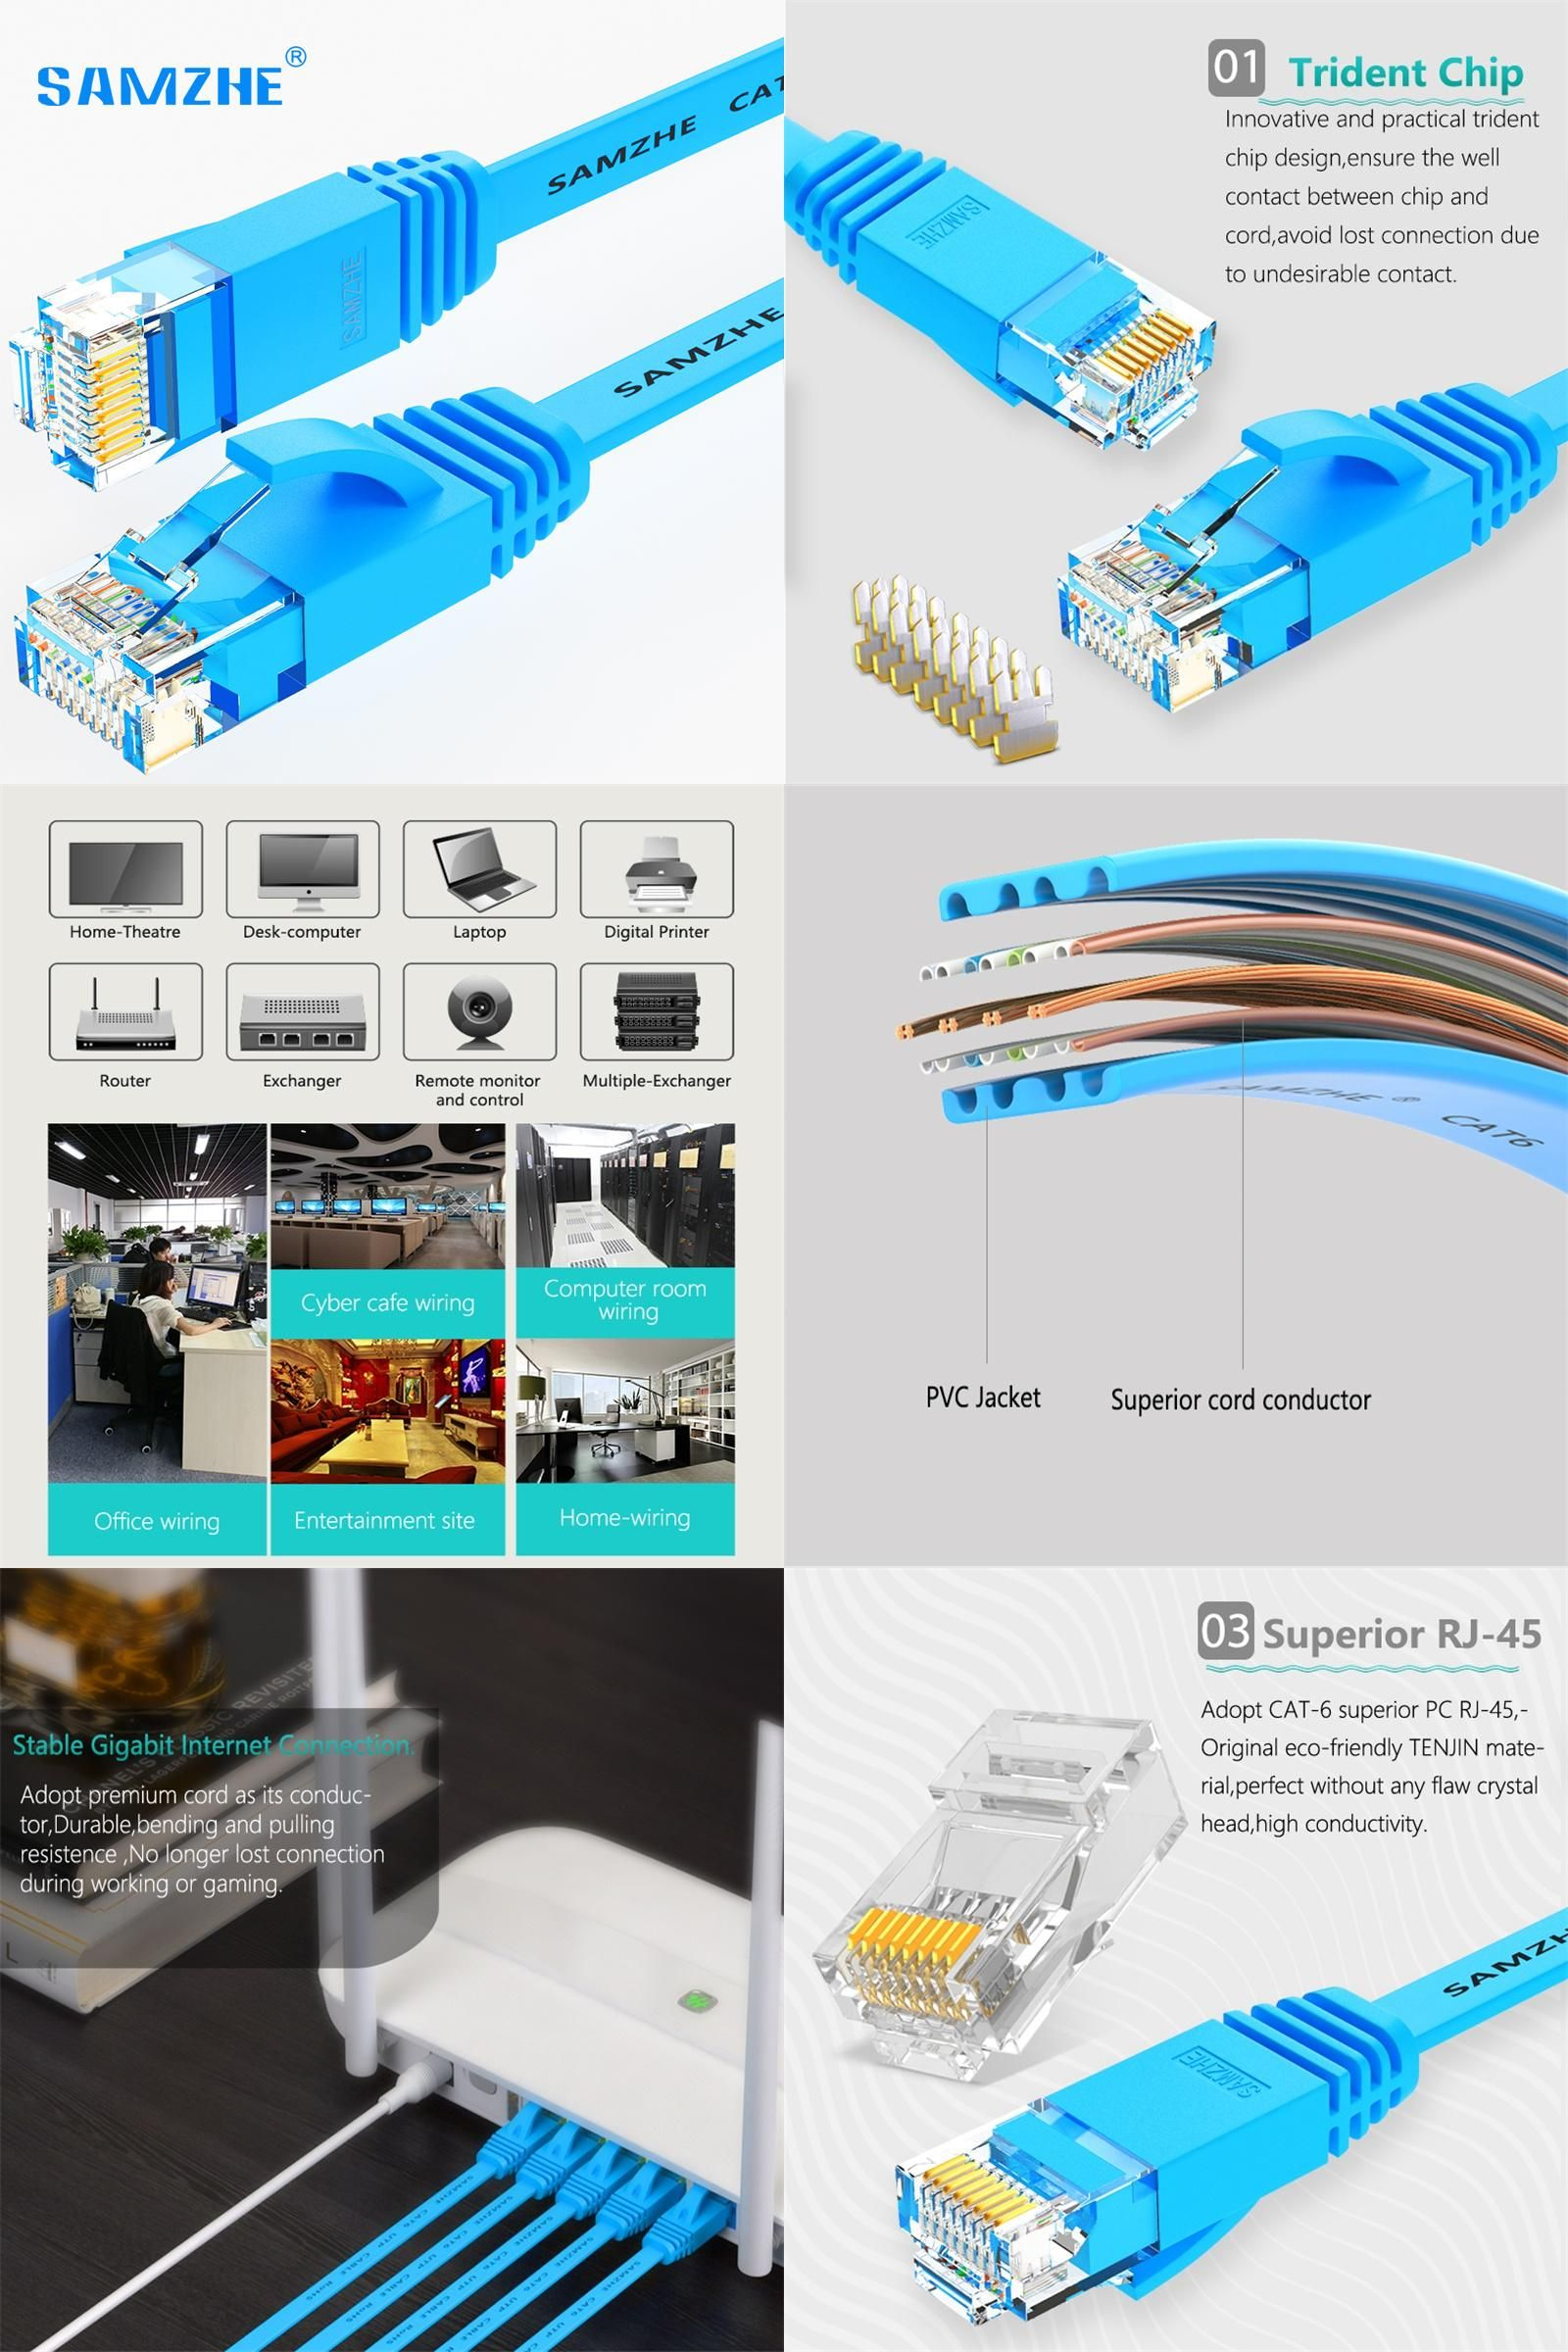 Visit To Buy Samzhe Cat6 Flat Ethernet Cable 250mhz 1000mbps Cat 6 Connection Wiring Rj45 Networking